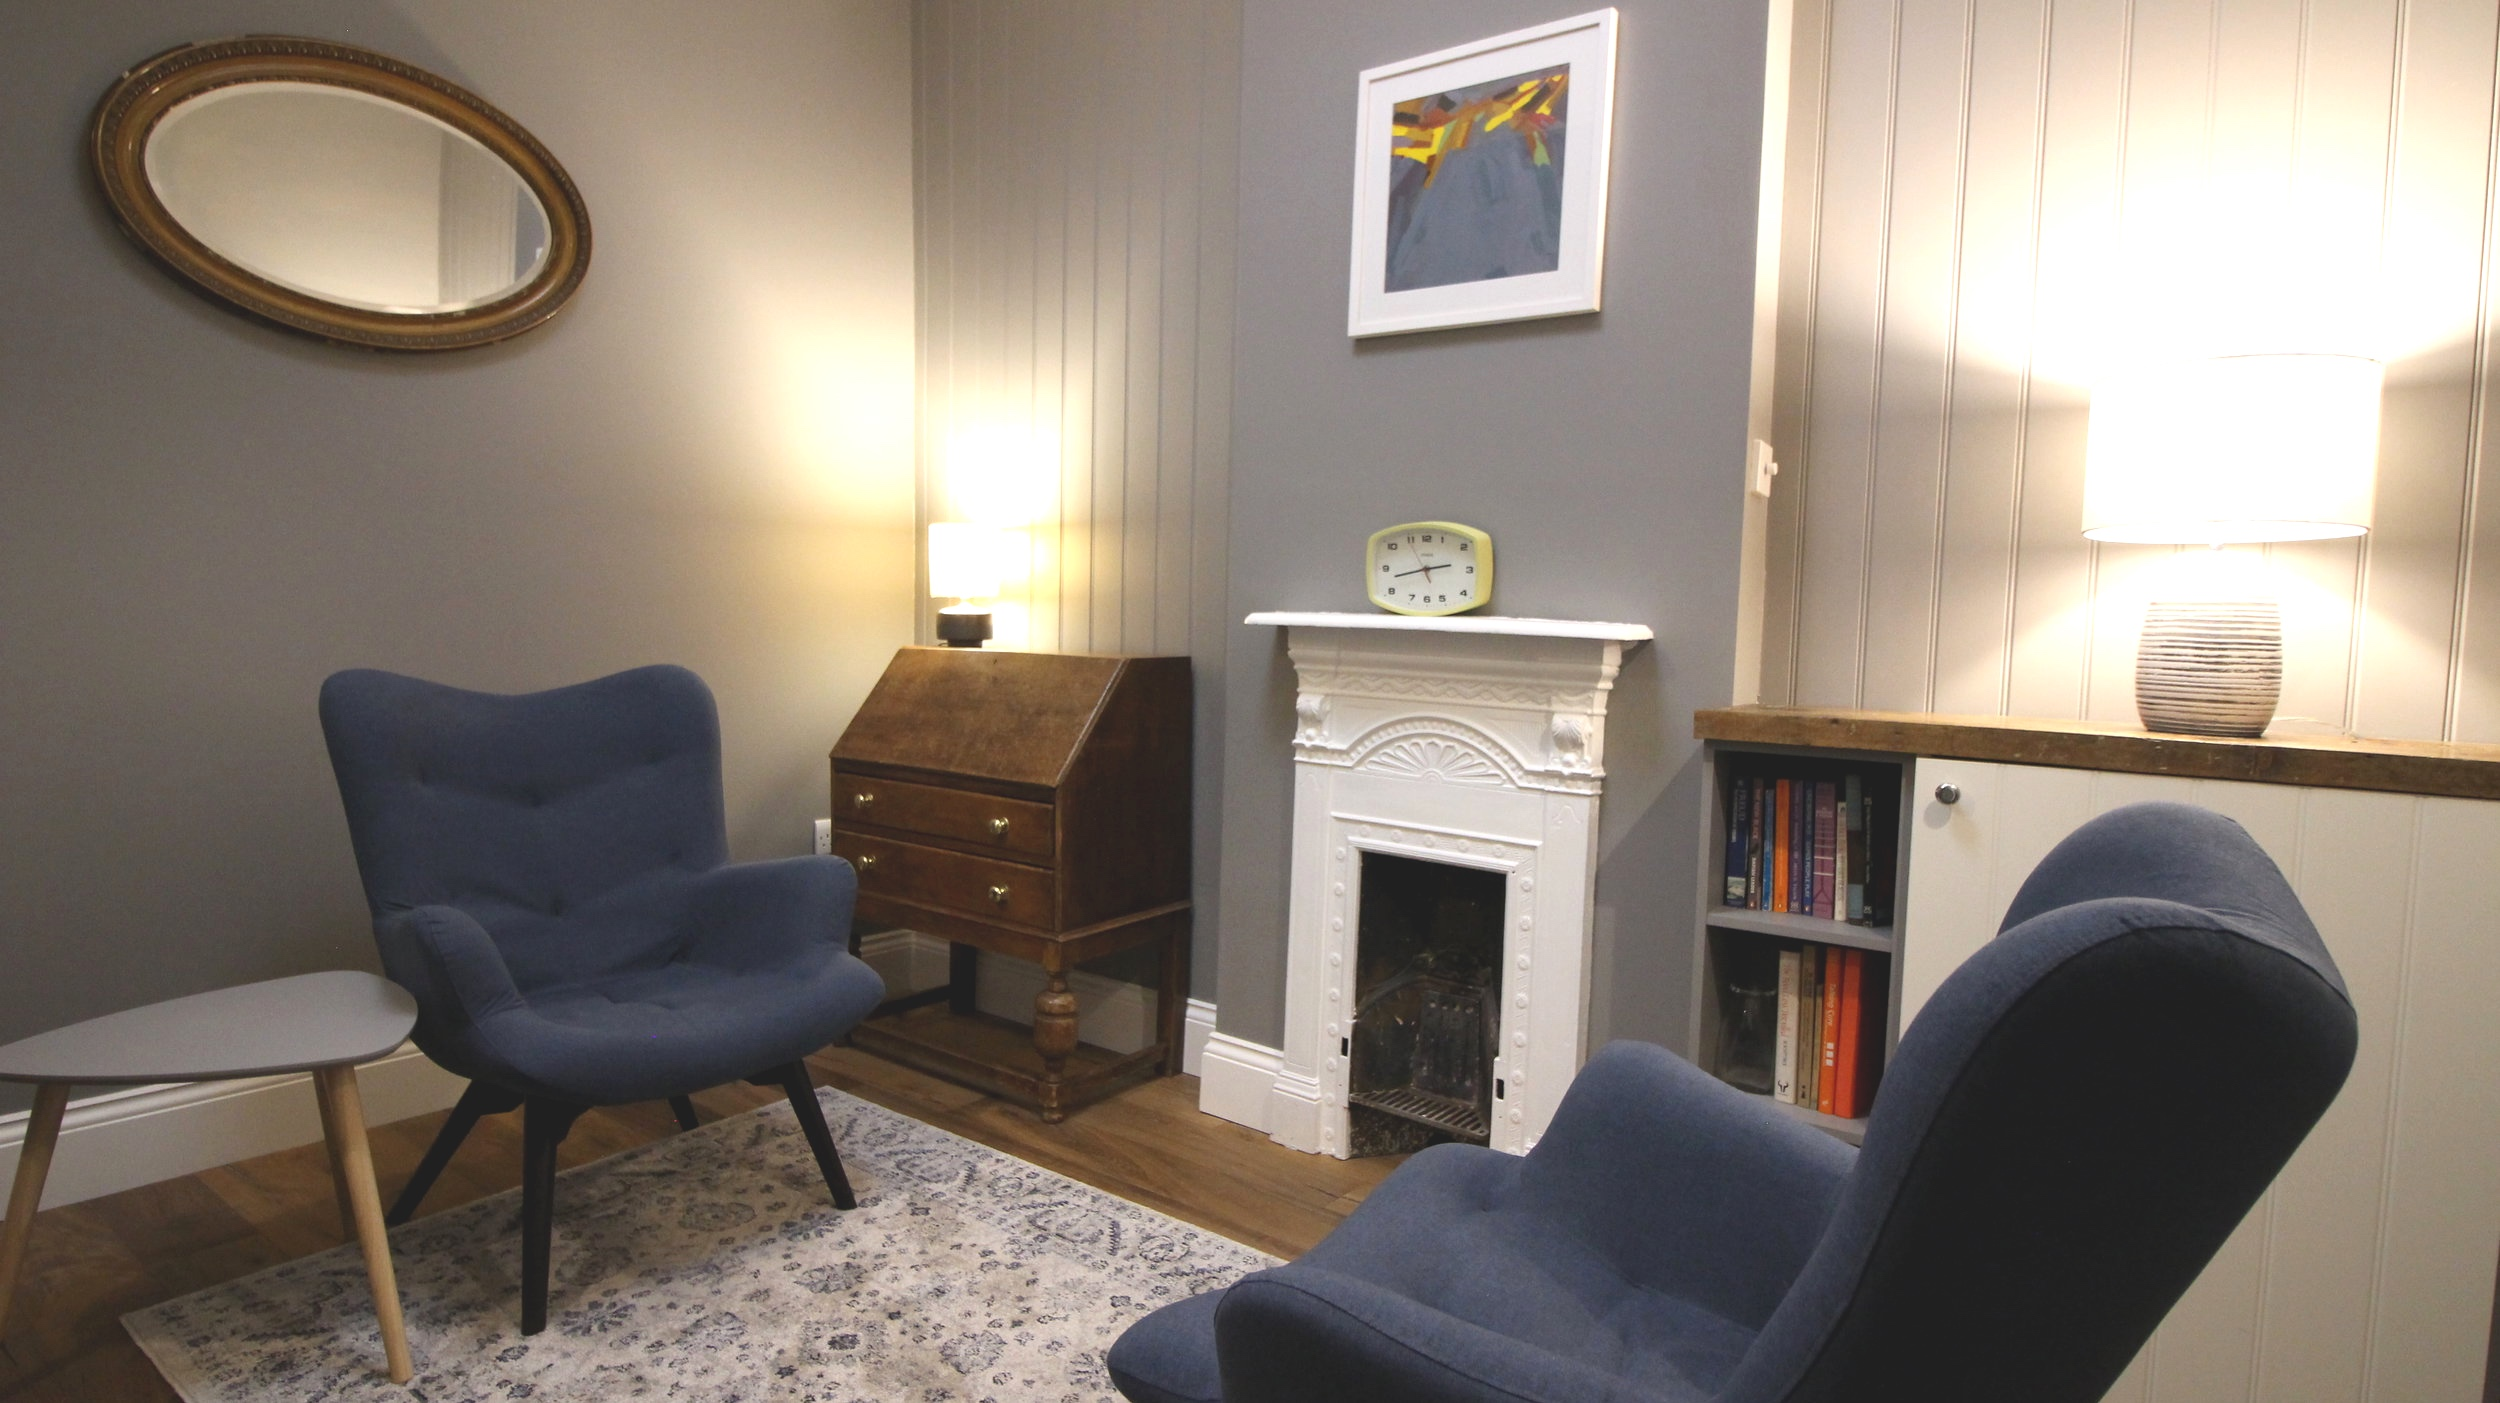 study - A beautiful room with ambient lighting contains two comfortable armchairs, a desk and additional chair.